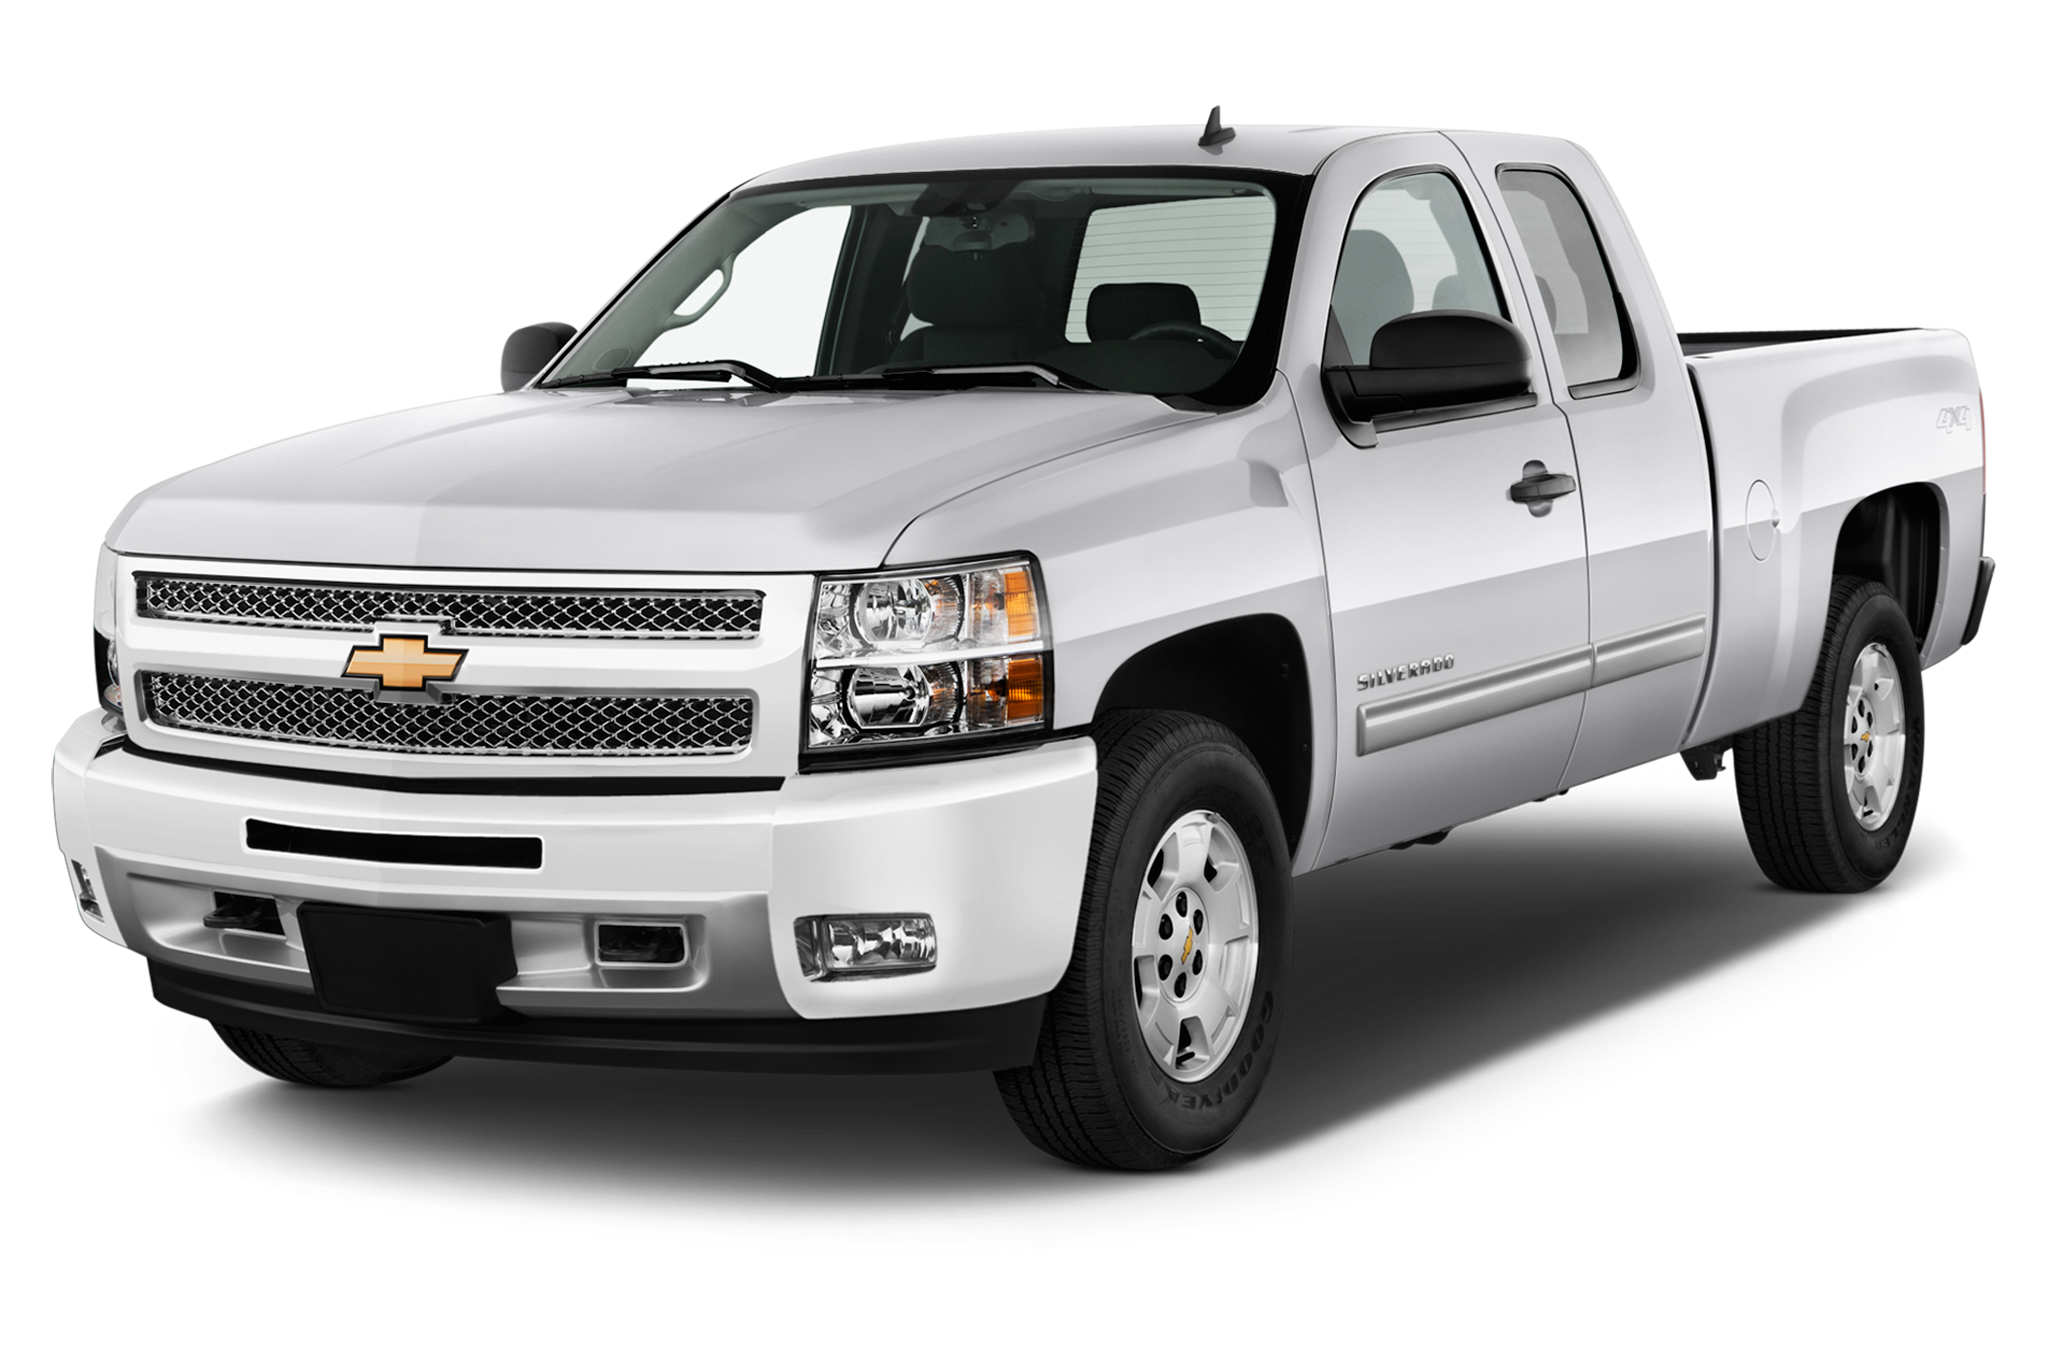 2012 chevrolet silverado 1500 work truck 4x4 extended cab mwb specs and features msn autos. Black Bedroom Furniture Sets. Home Design Ideas